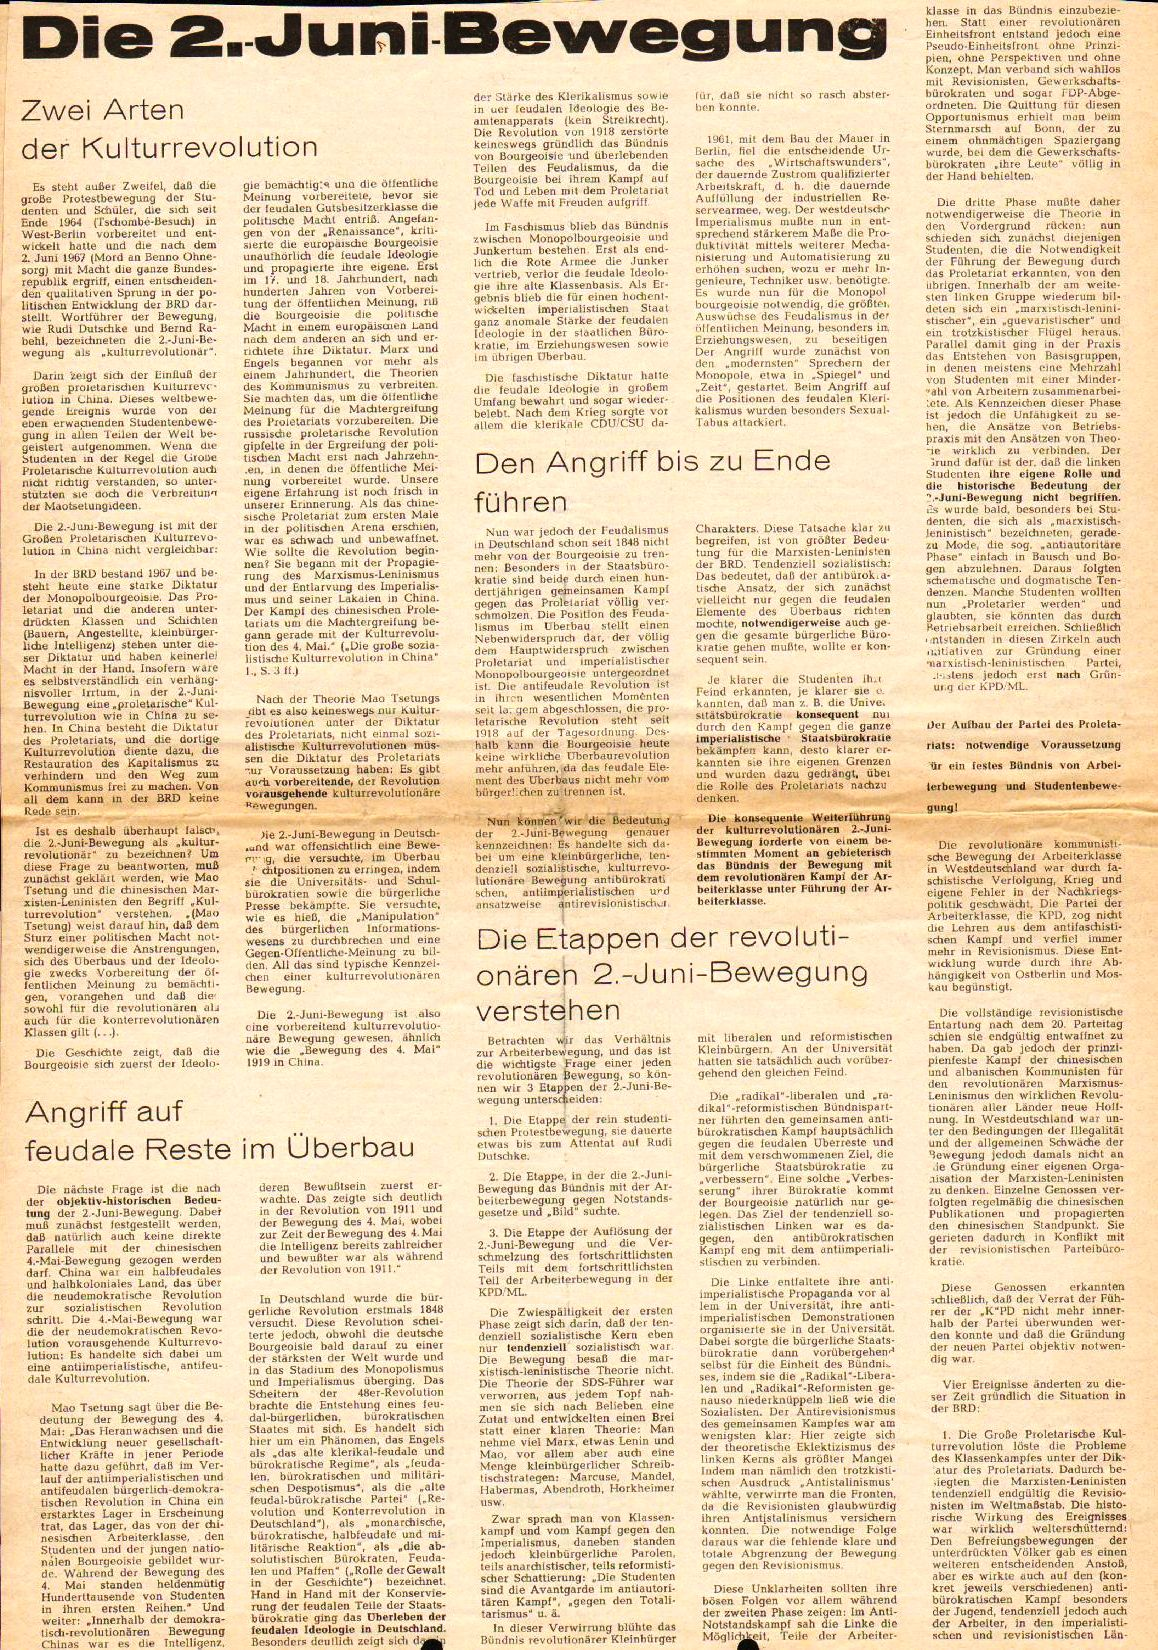 Roter Morgen, 4. Jg., August 1970, Nr. 7, Seite 4